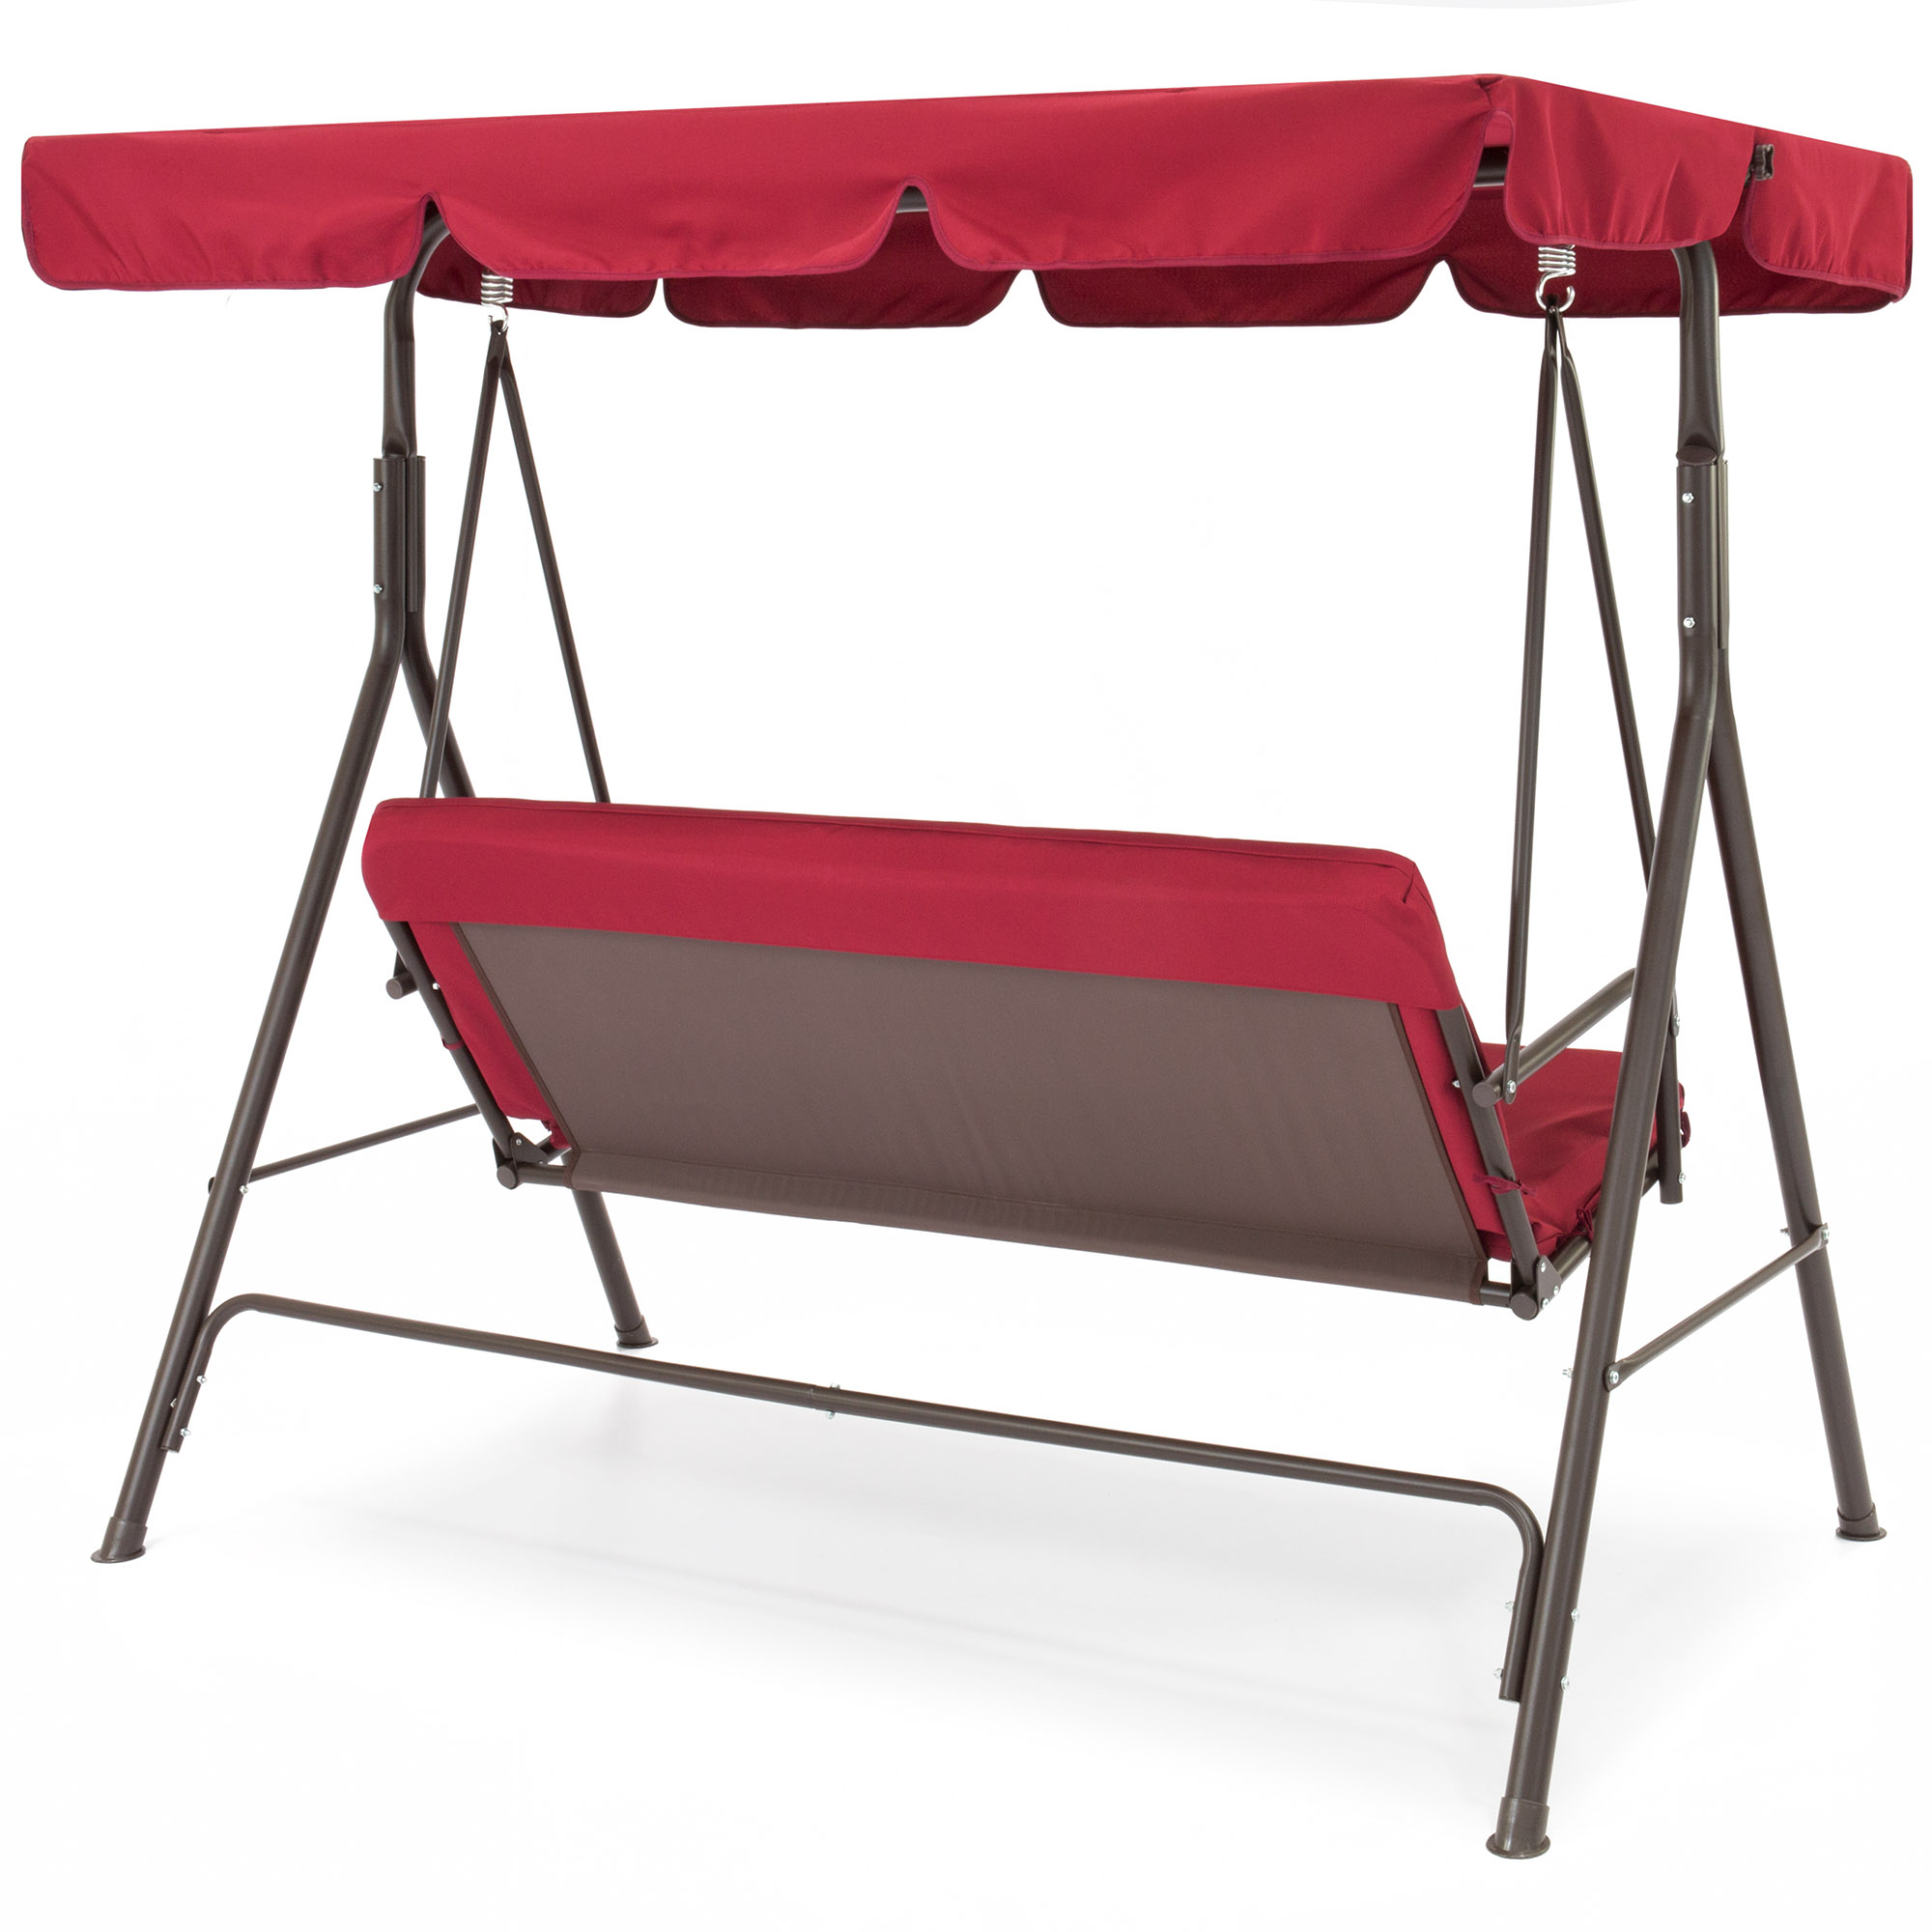 Best Choice Products 2 Person Outdoor Large Convertible Intended For Well Liked 2 Person Outdoor Convertible Canopy Swing Gliders With Removable Cushions Beige (View 12 of 25)